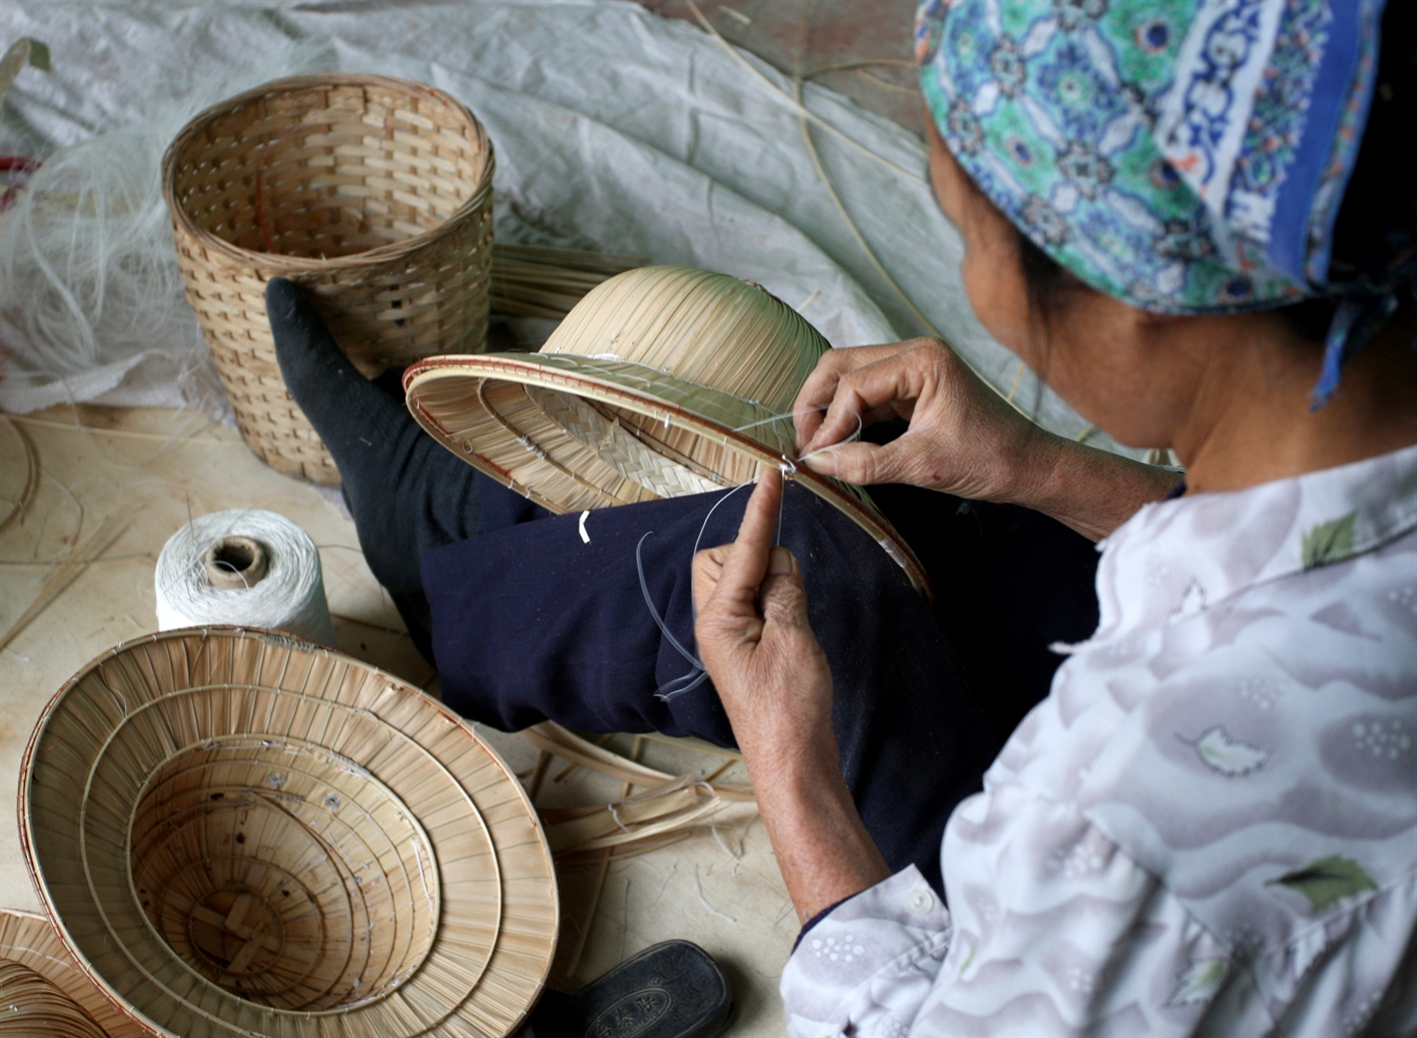 tri le - a village that makes traditional palm leaf hats hinh 5